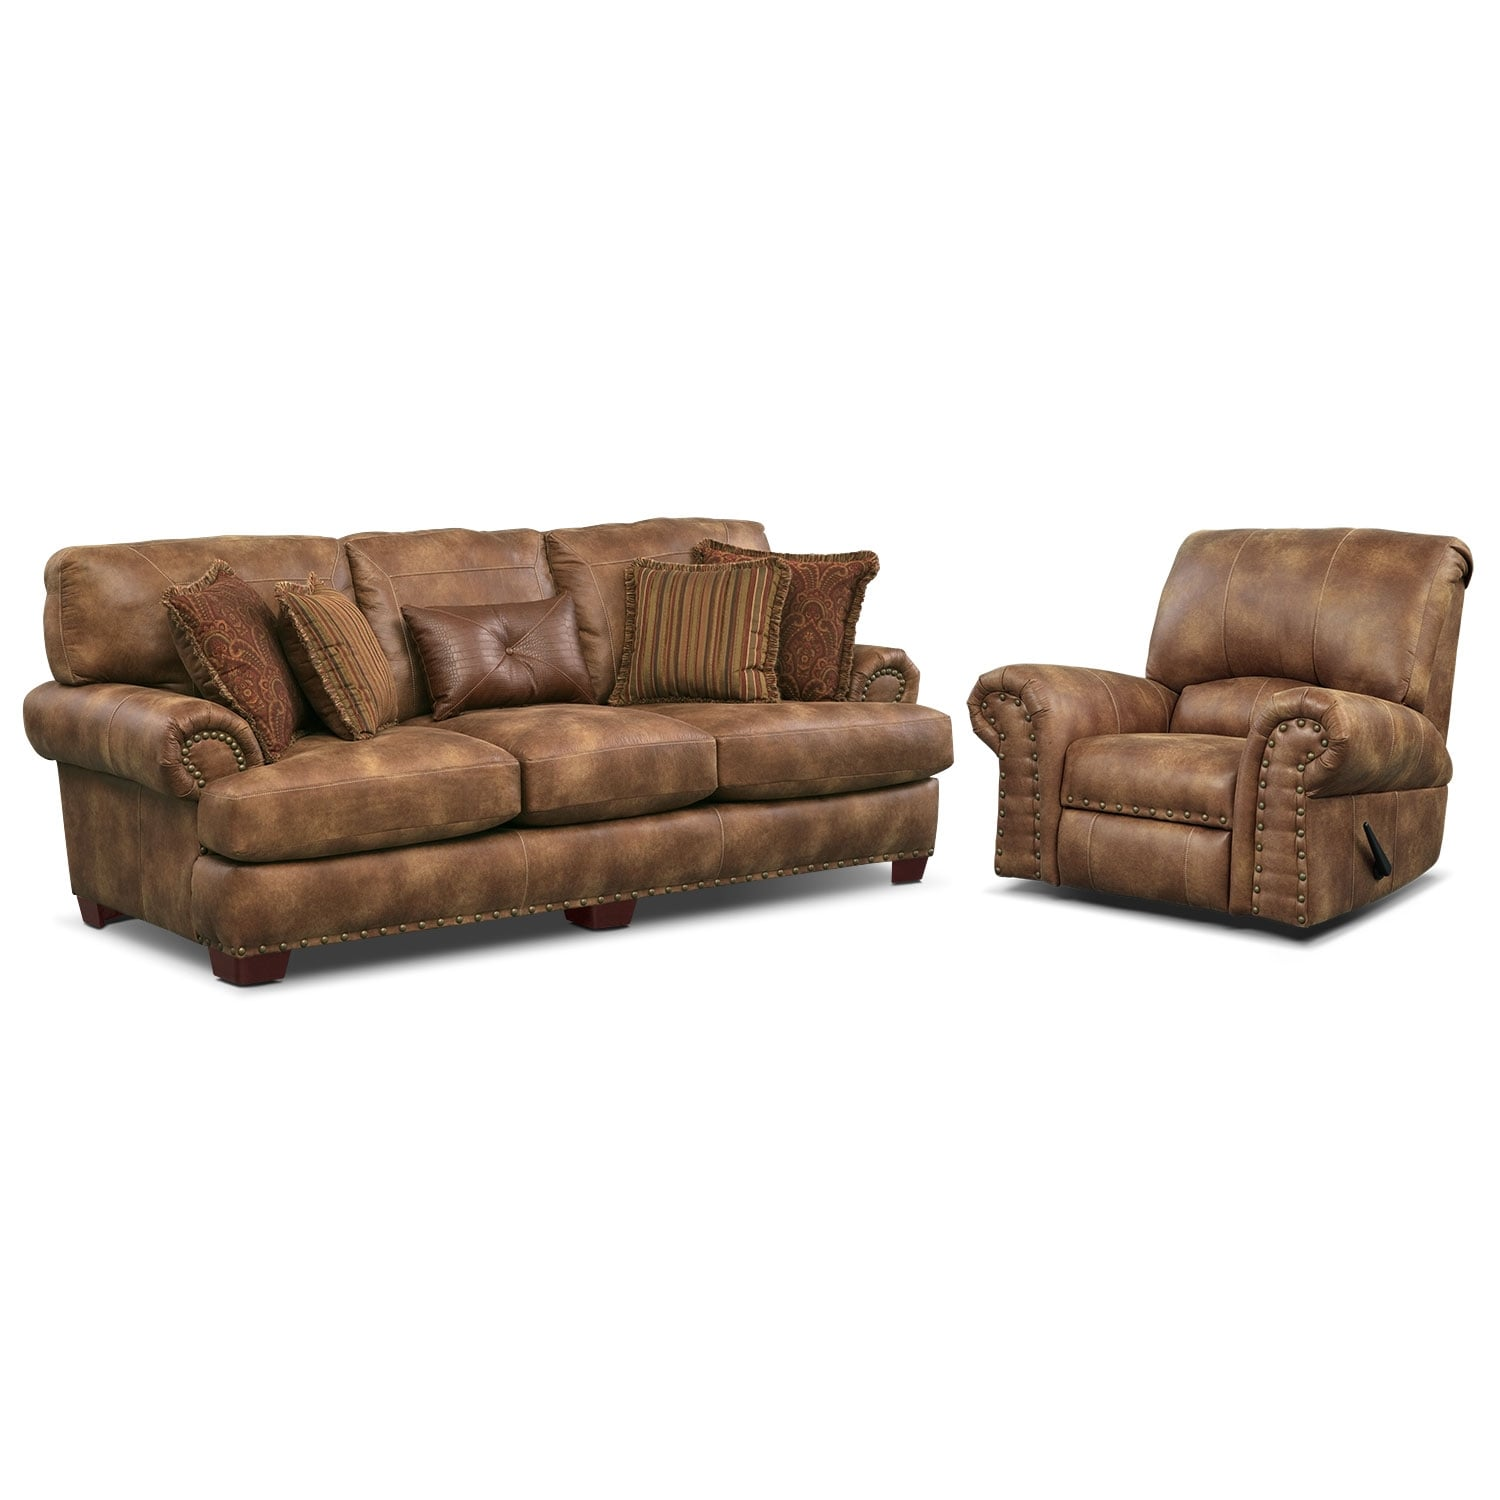 Burlington Sofa and Recliner Set - Cognac